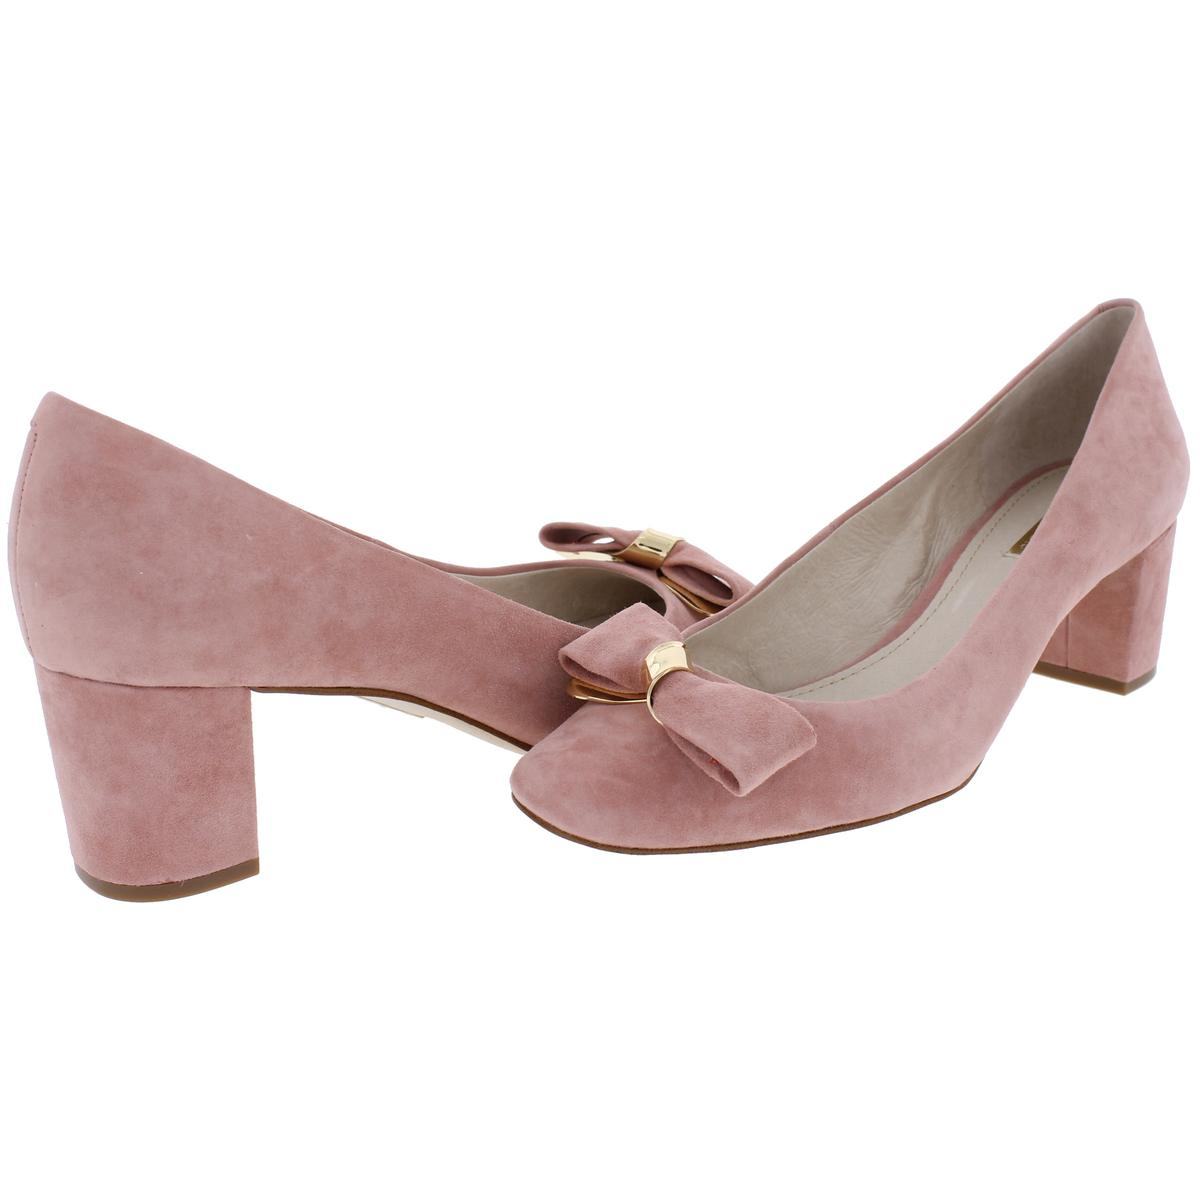 Louise Et Cie Damenschuhe Lilla BHFO Bow Pumps CoveROT Block Dress Heels Schuhes BHFO Lilla 0634 417468